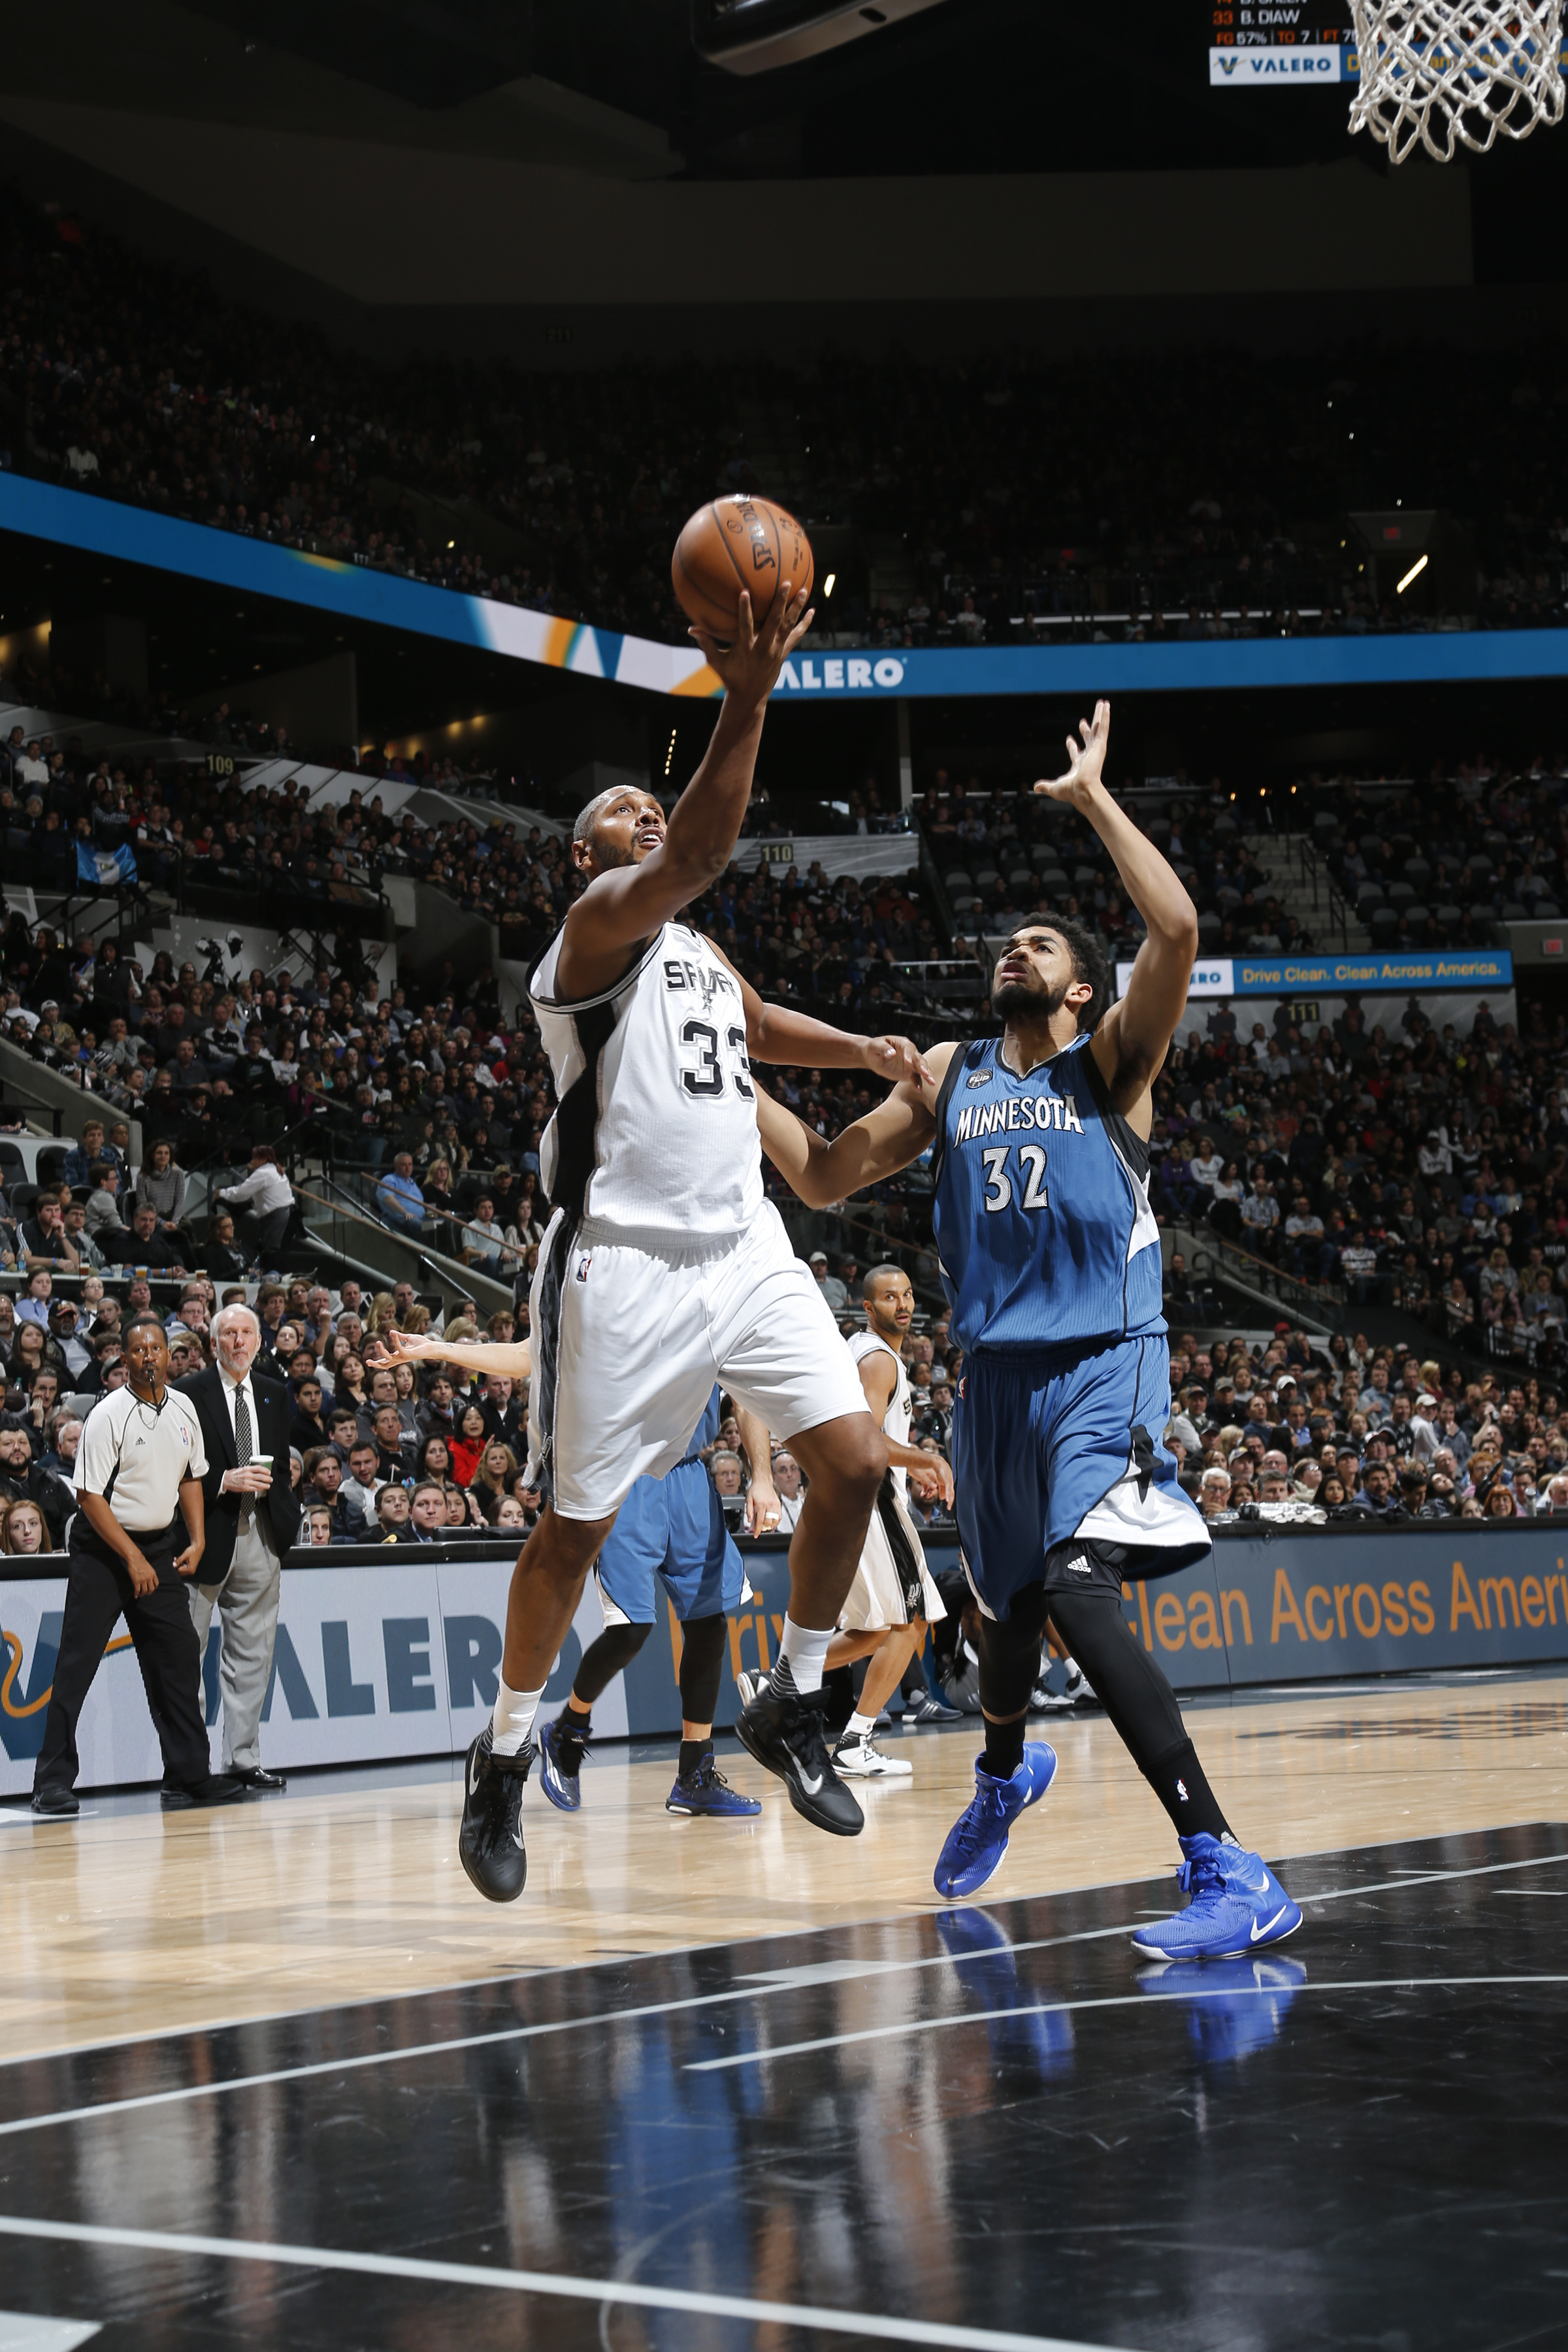 SAN ANTONIO, TX - DECEMBER 28:  Boris Diaw #33 of the San Antonio Spurs shoots the ball against Karl-Anthony Towns #32 of the Minnesota Timberwolves on December 28, 2015 at the AT&T Center in San Antonio, Texas.